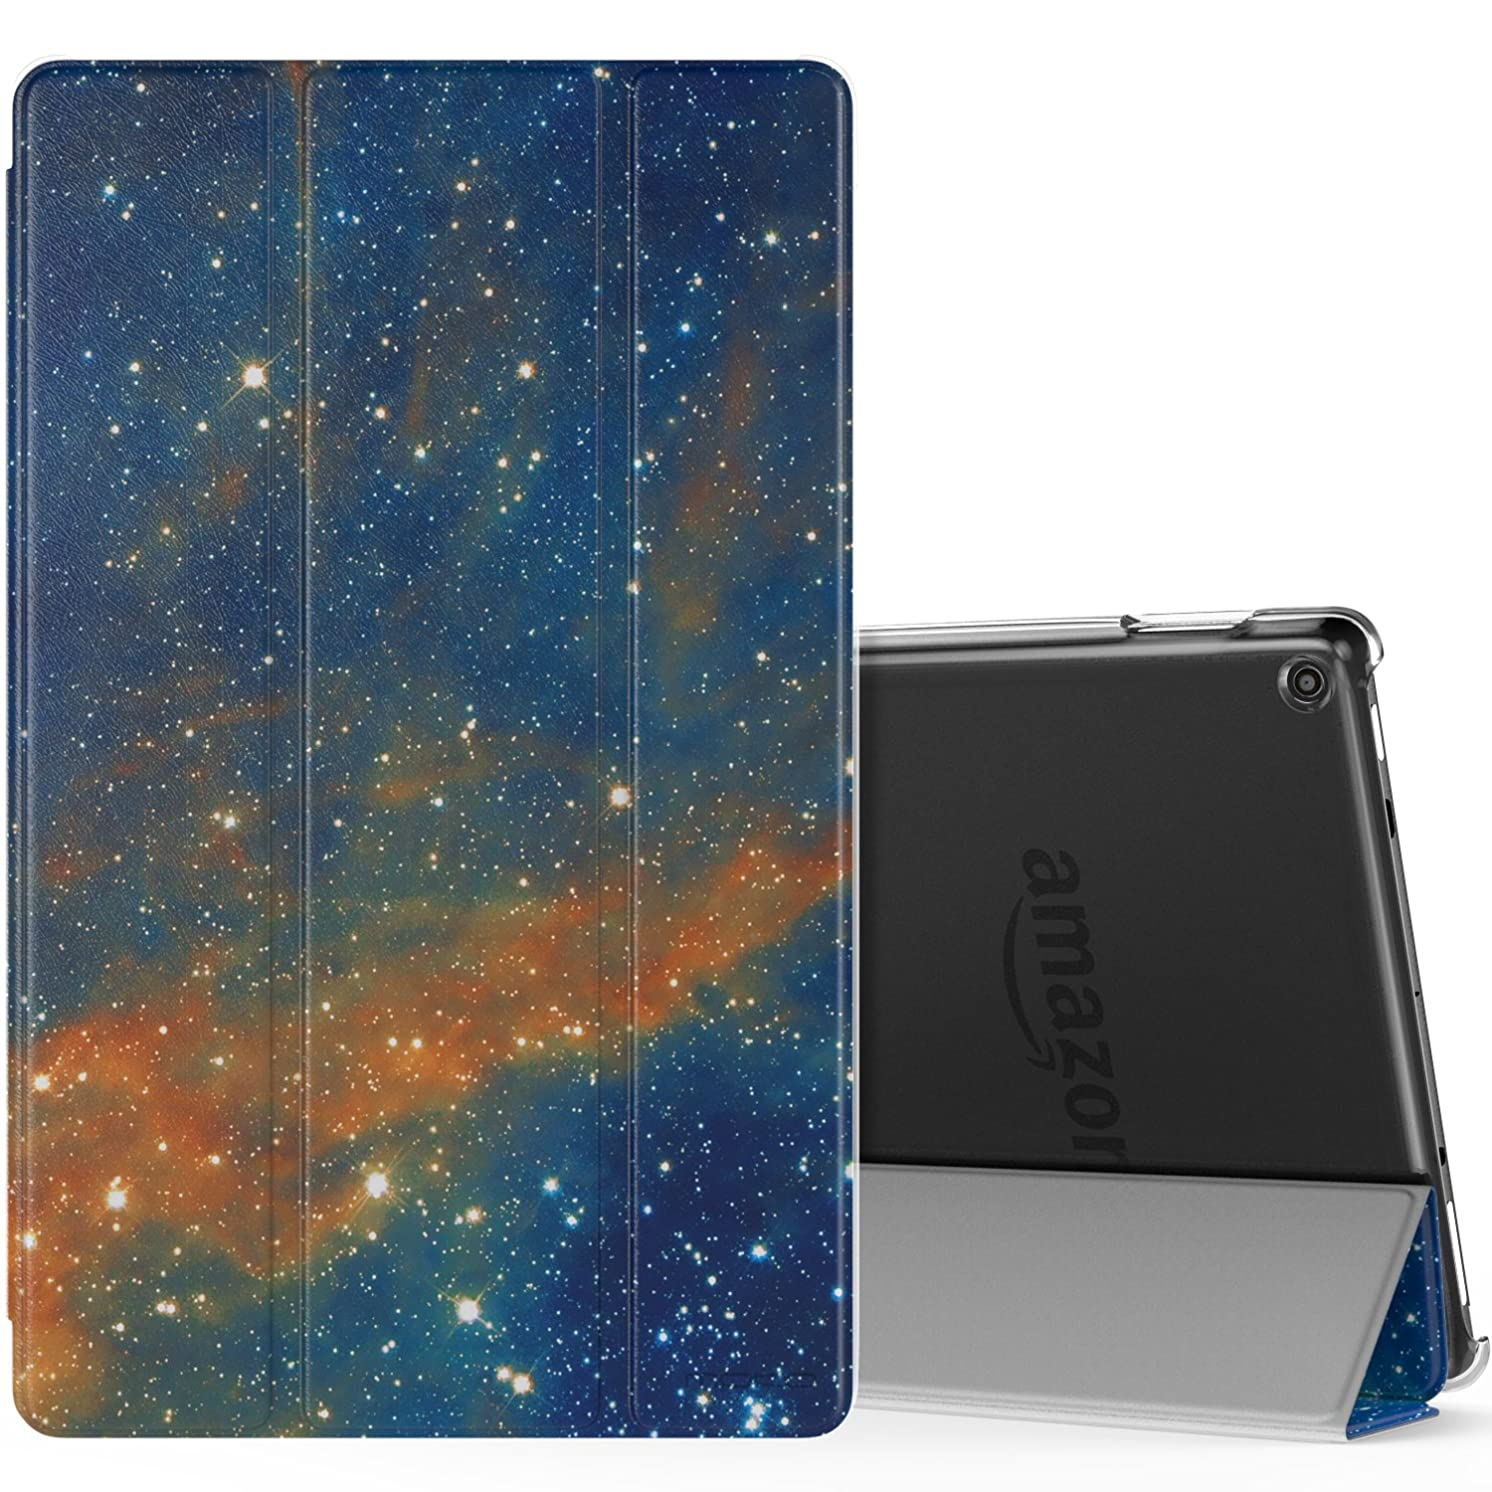 MoKo Case for All-New Amazon Fire HD 10 Tablet (7th Generation, 2017 Release) - Smart Shell Stand Cover with Auto Wake/Sleep & Translucent Frosted Back for Fire HD 10.1 Inch Tablet, Sky Star